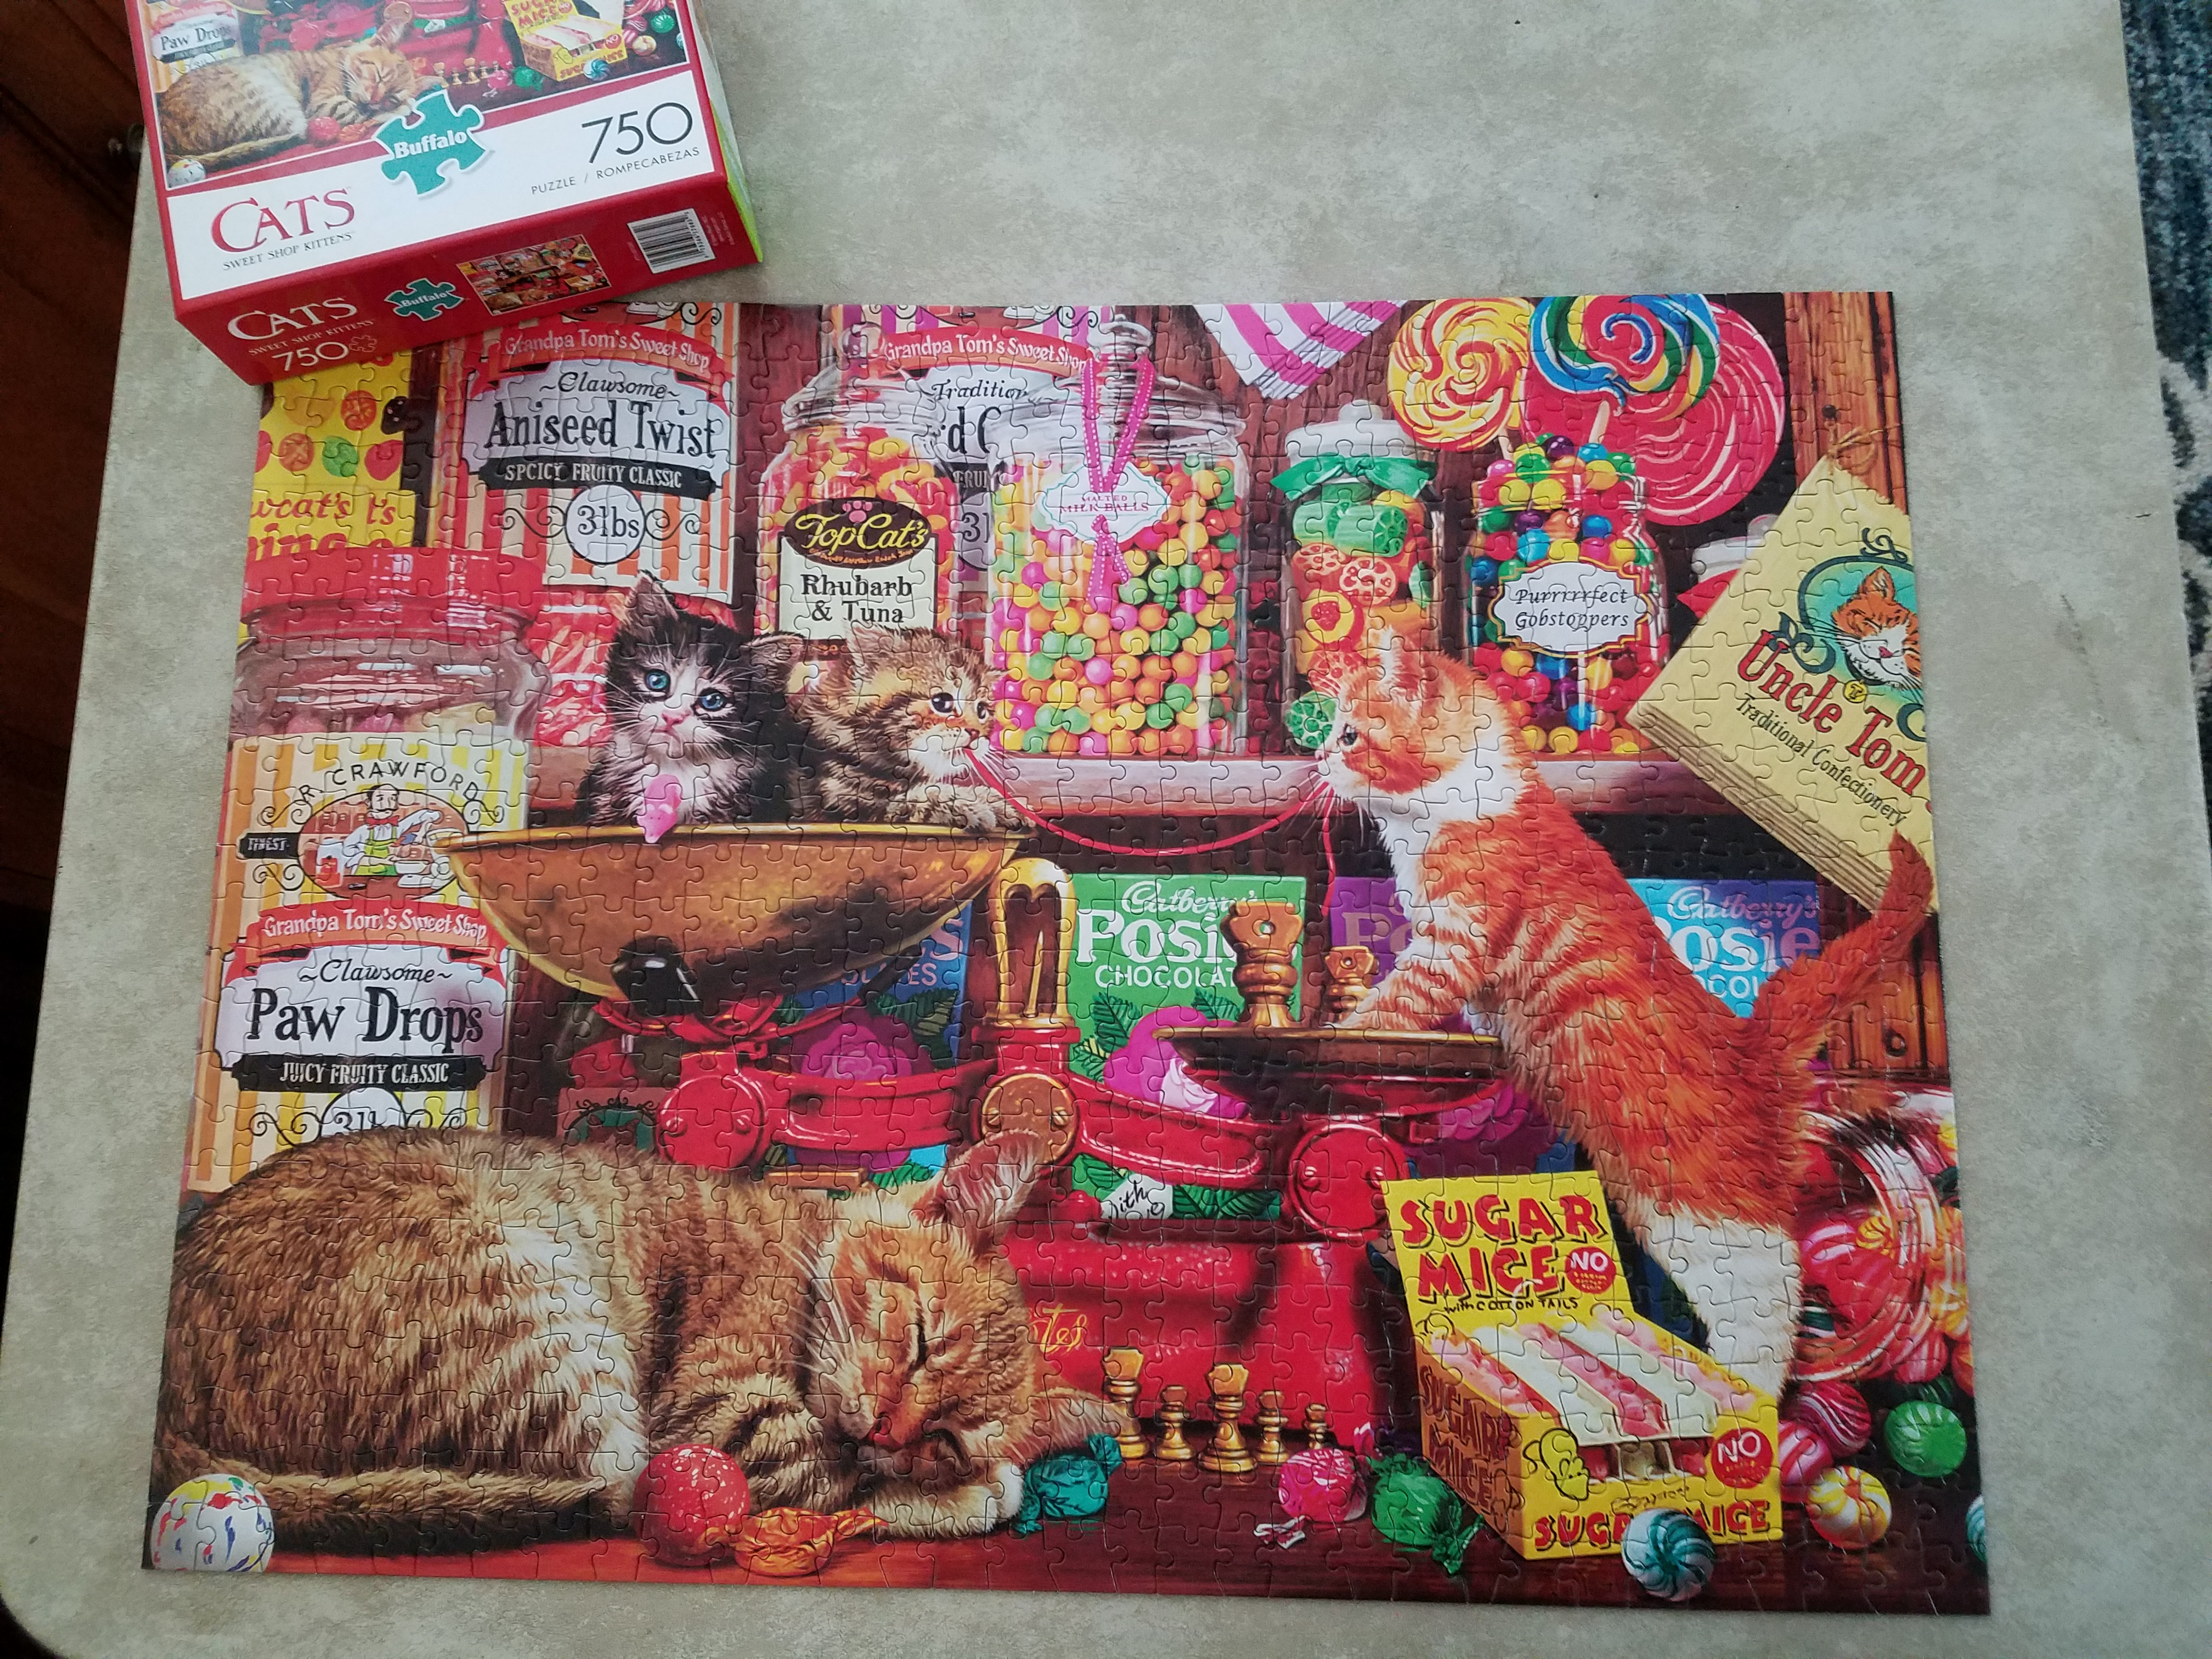 750 cats puzzle.jpg